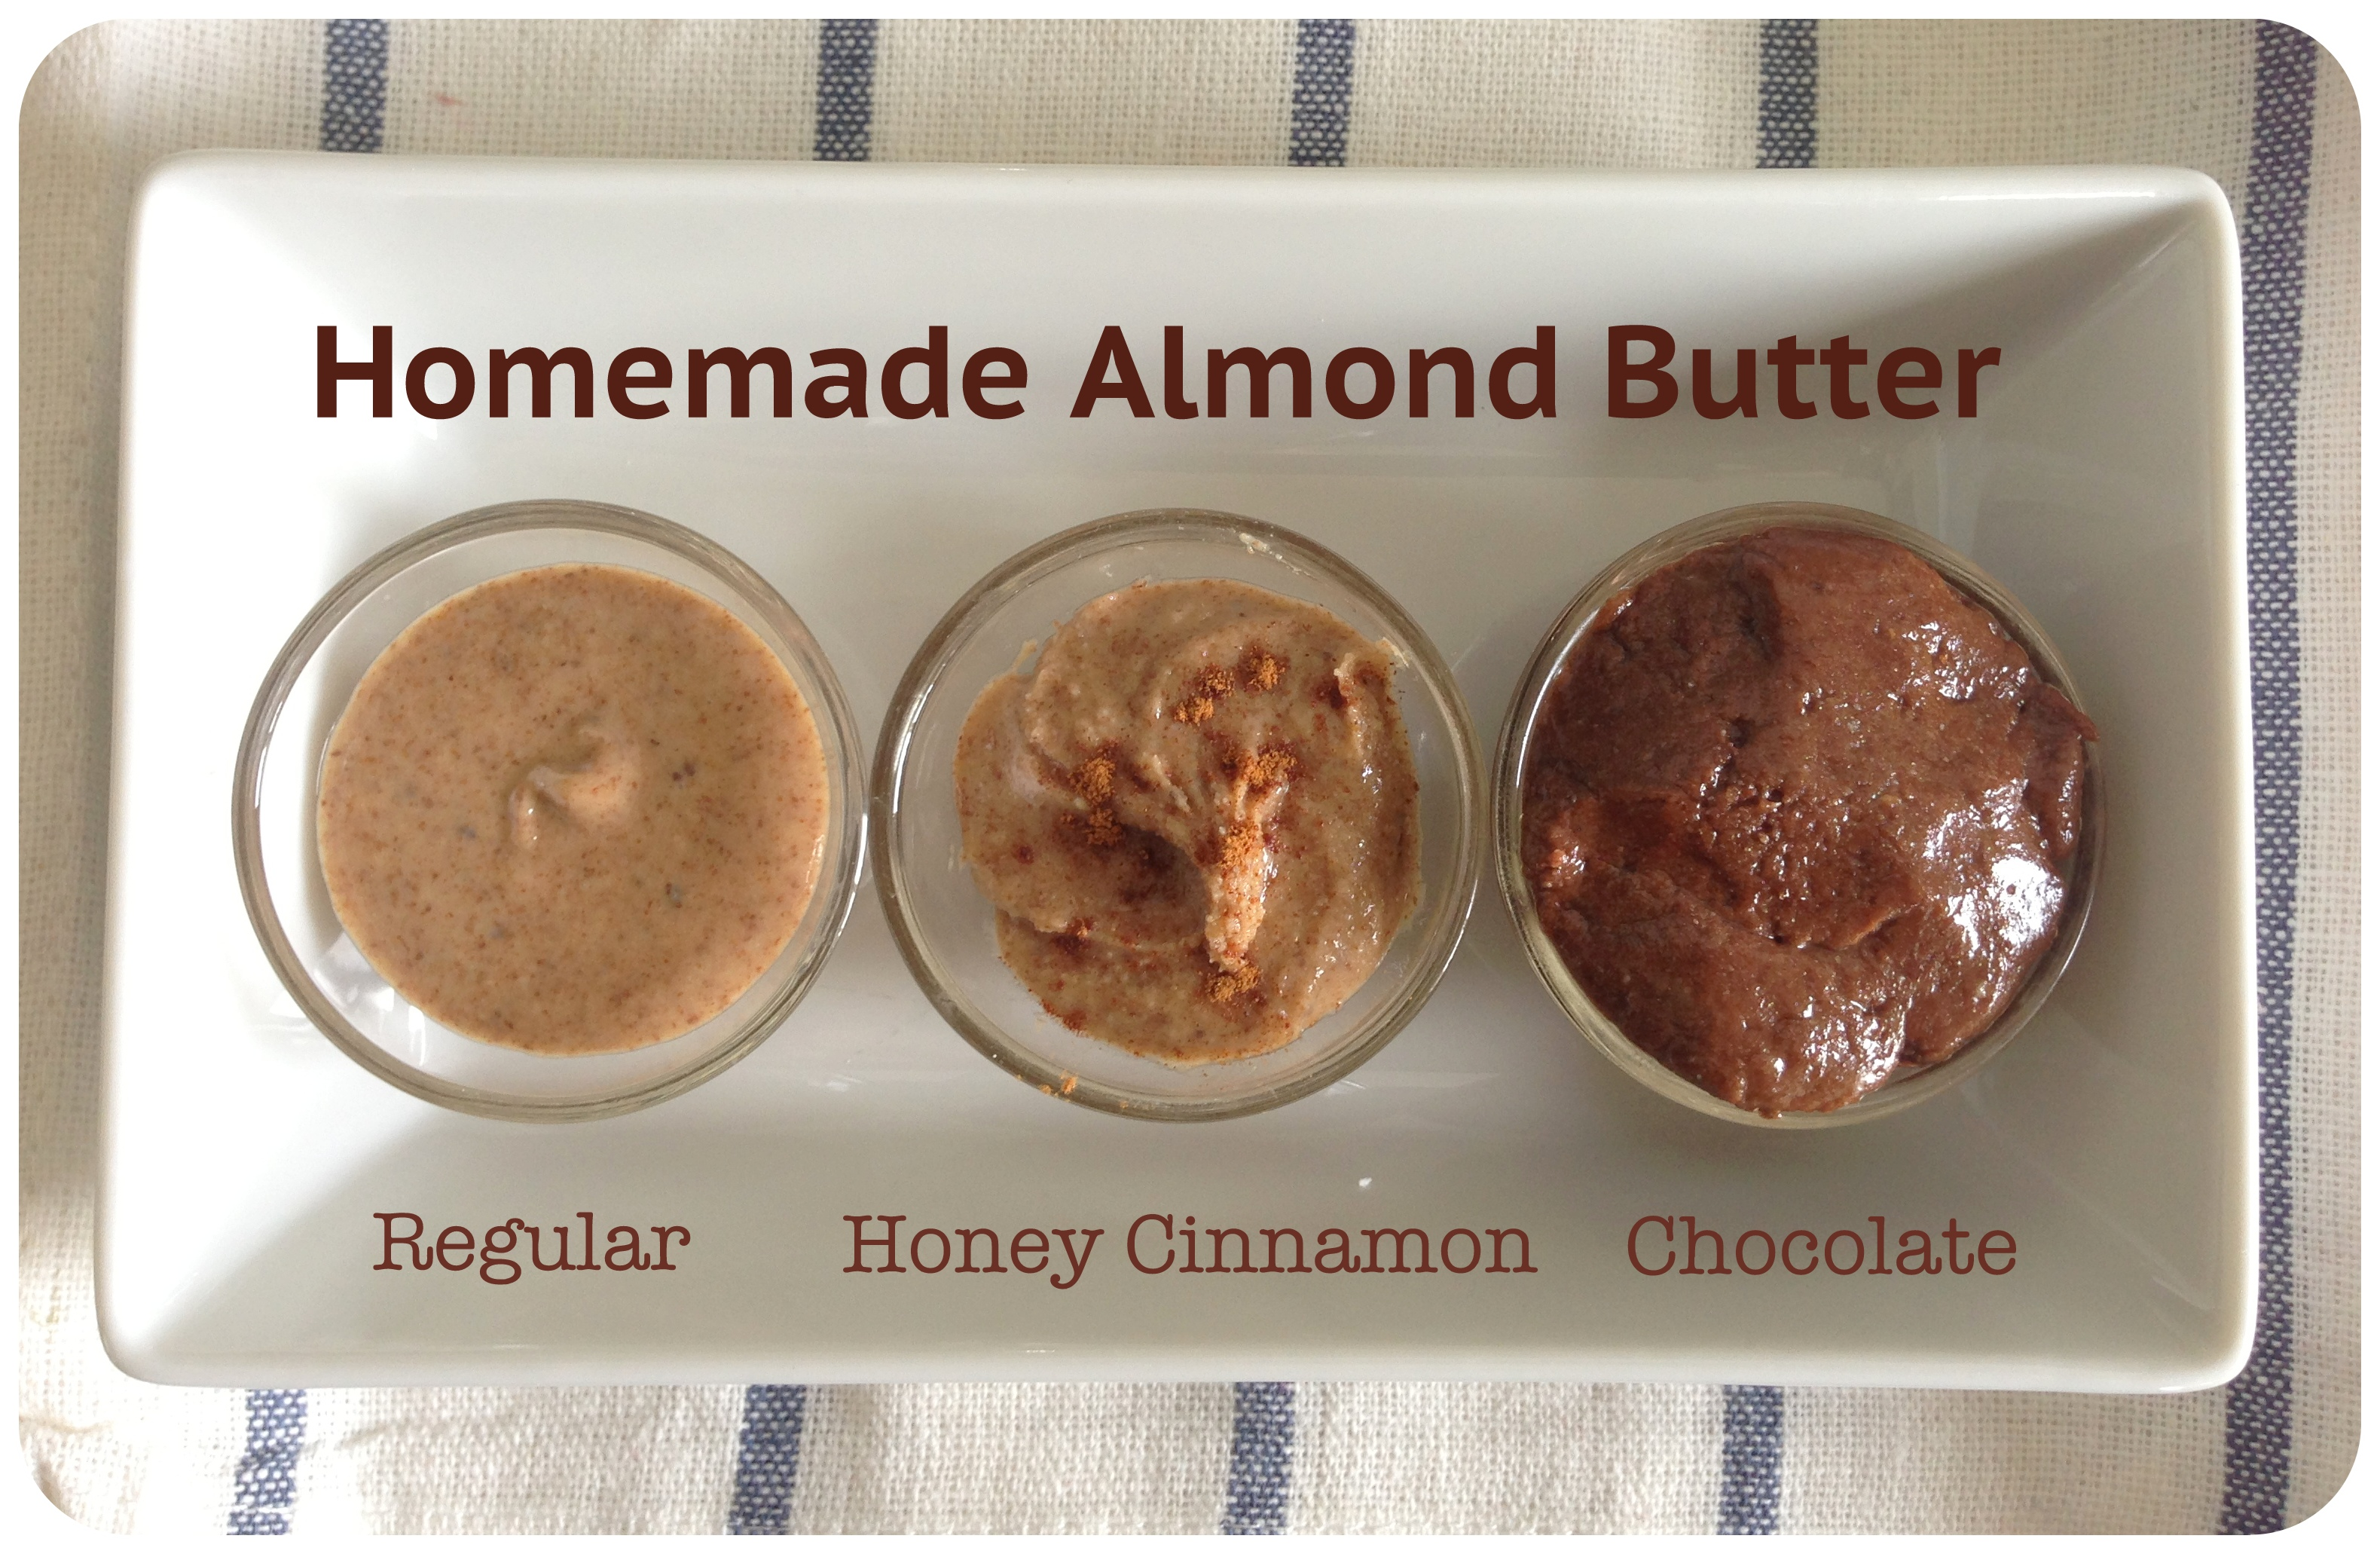 Homemade Chocolate Spread With Almond Butter